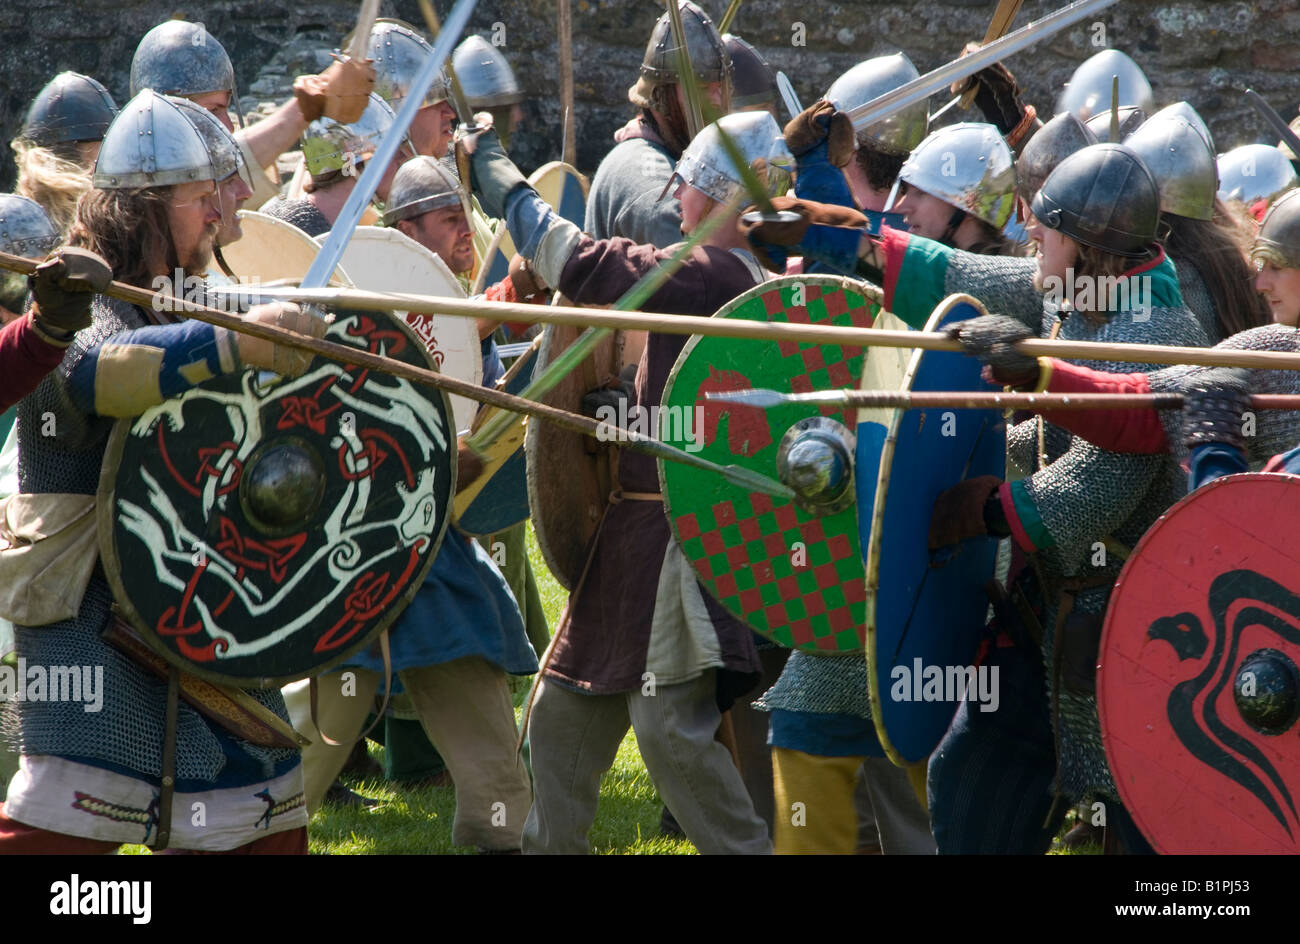 Vikings from a re enactment group on Lindisfarne which the real vikings famously invaded in AD794 - Stock Image